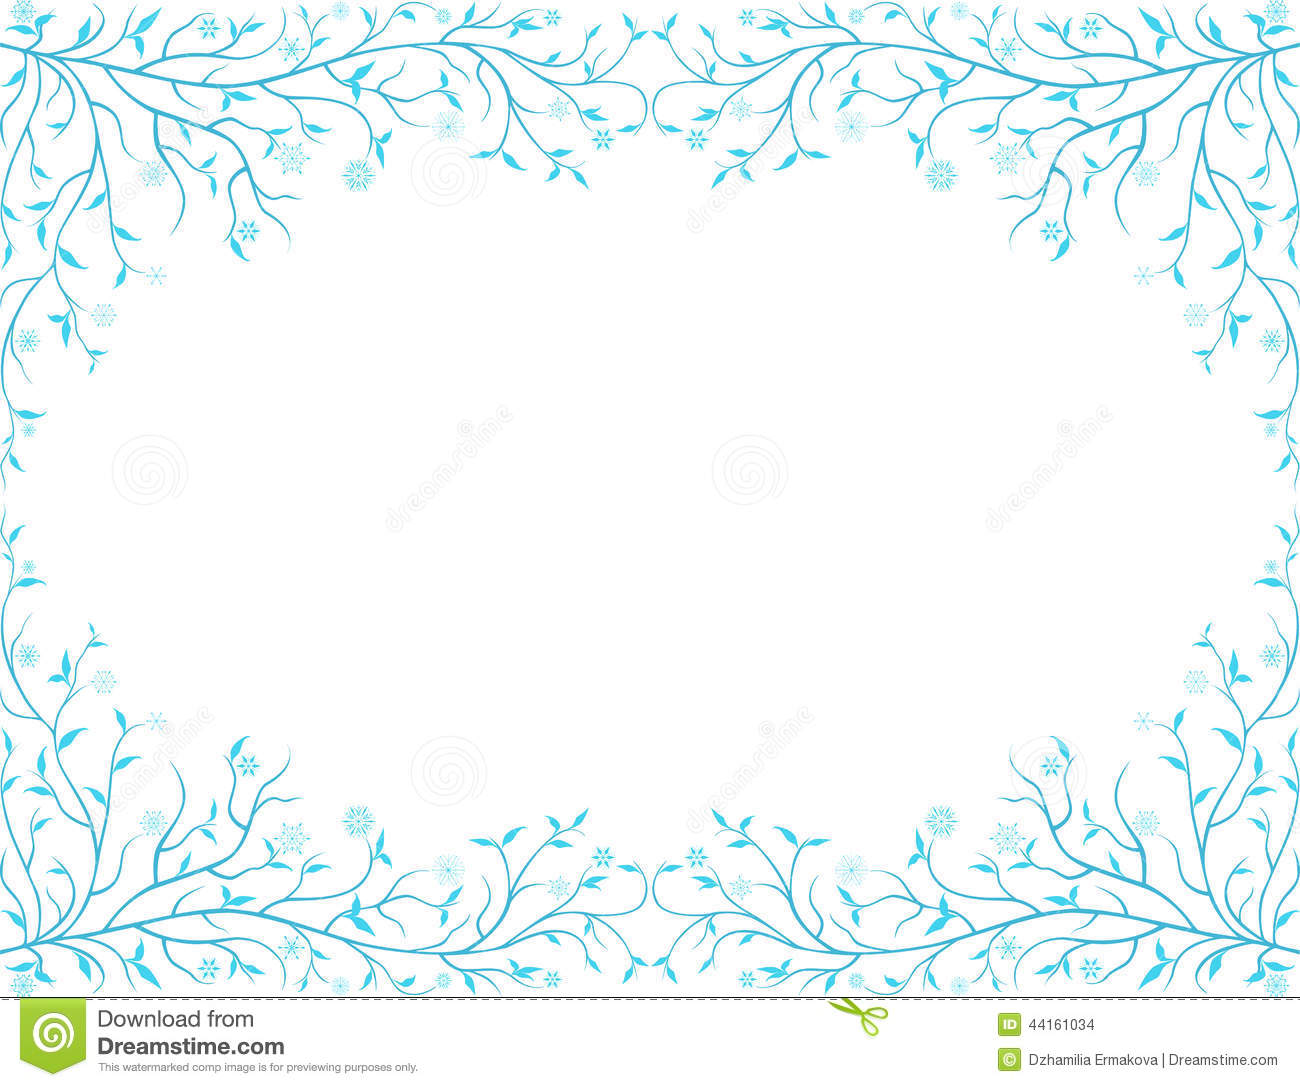 Frozen Frame Illustration 44161034 - Megapixl